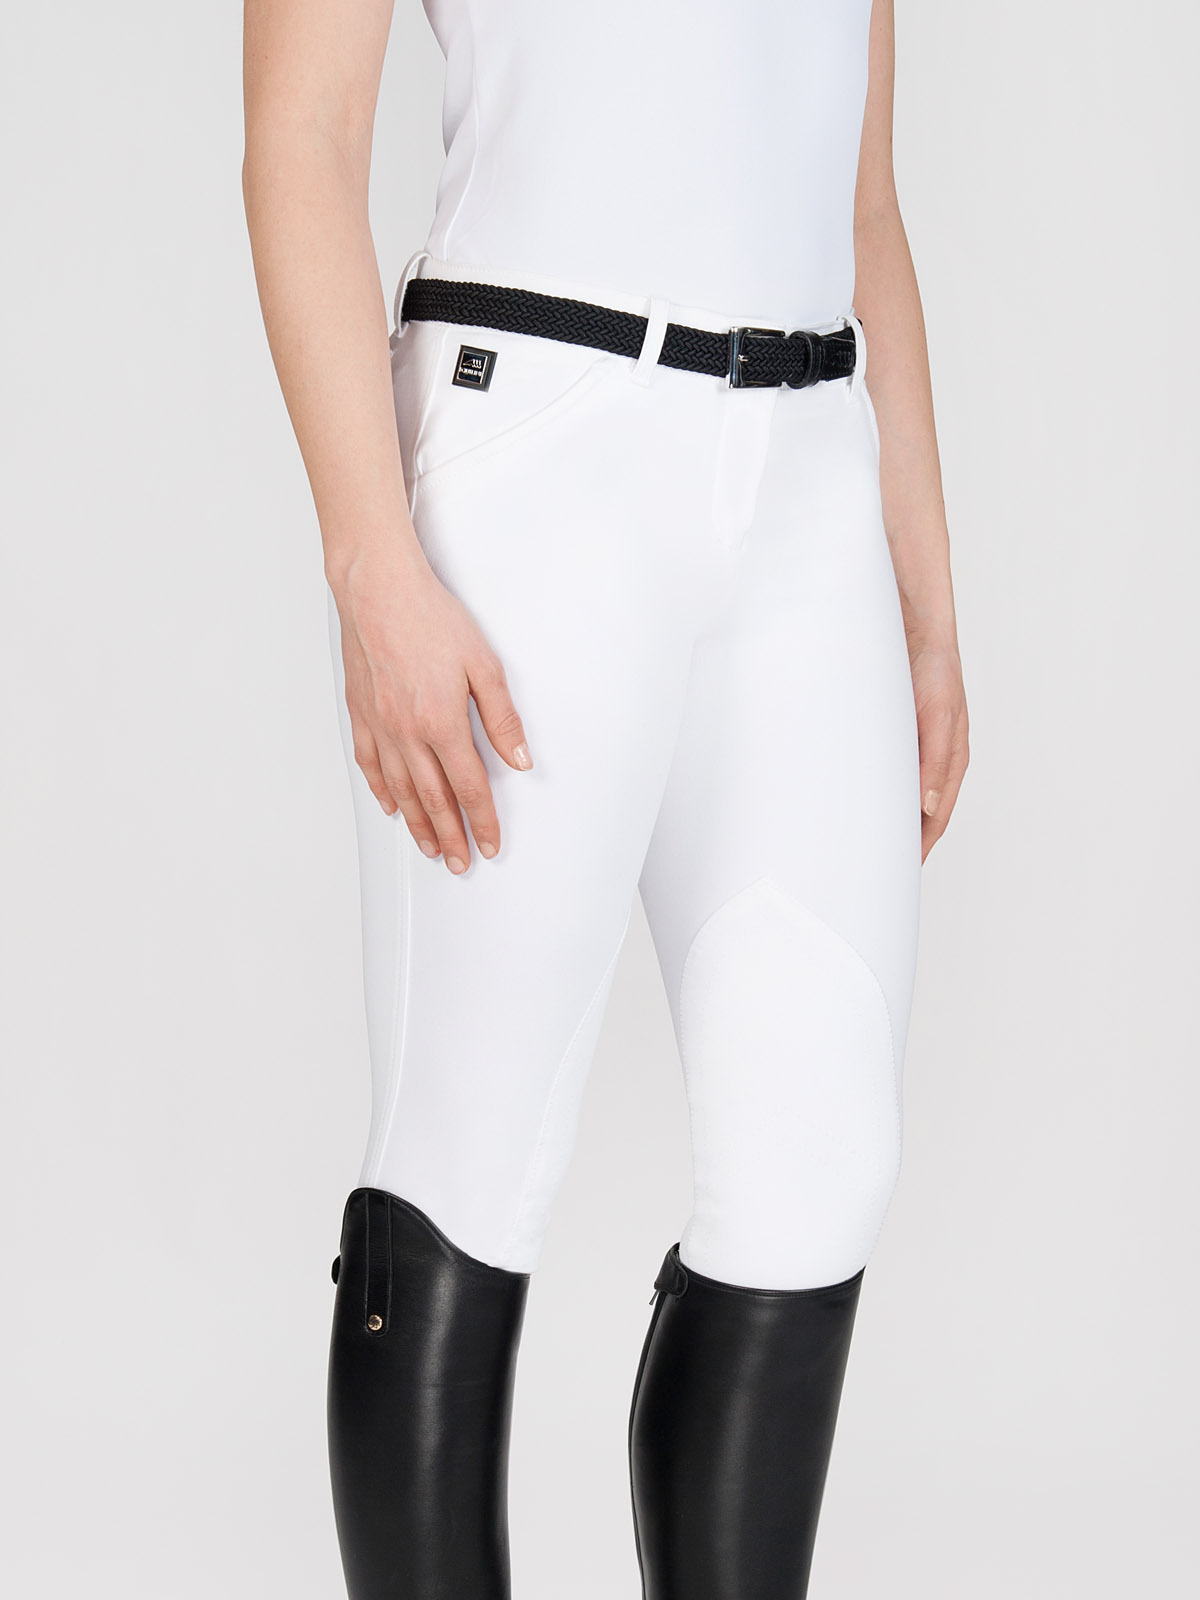 BOSTON - Women's Knee Patch Riding Breeches 2